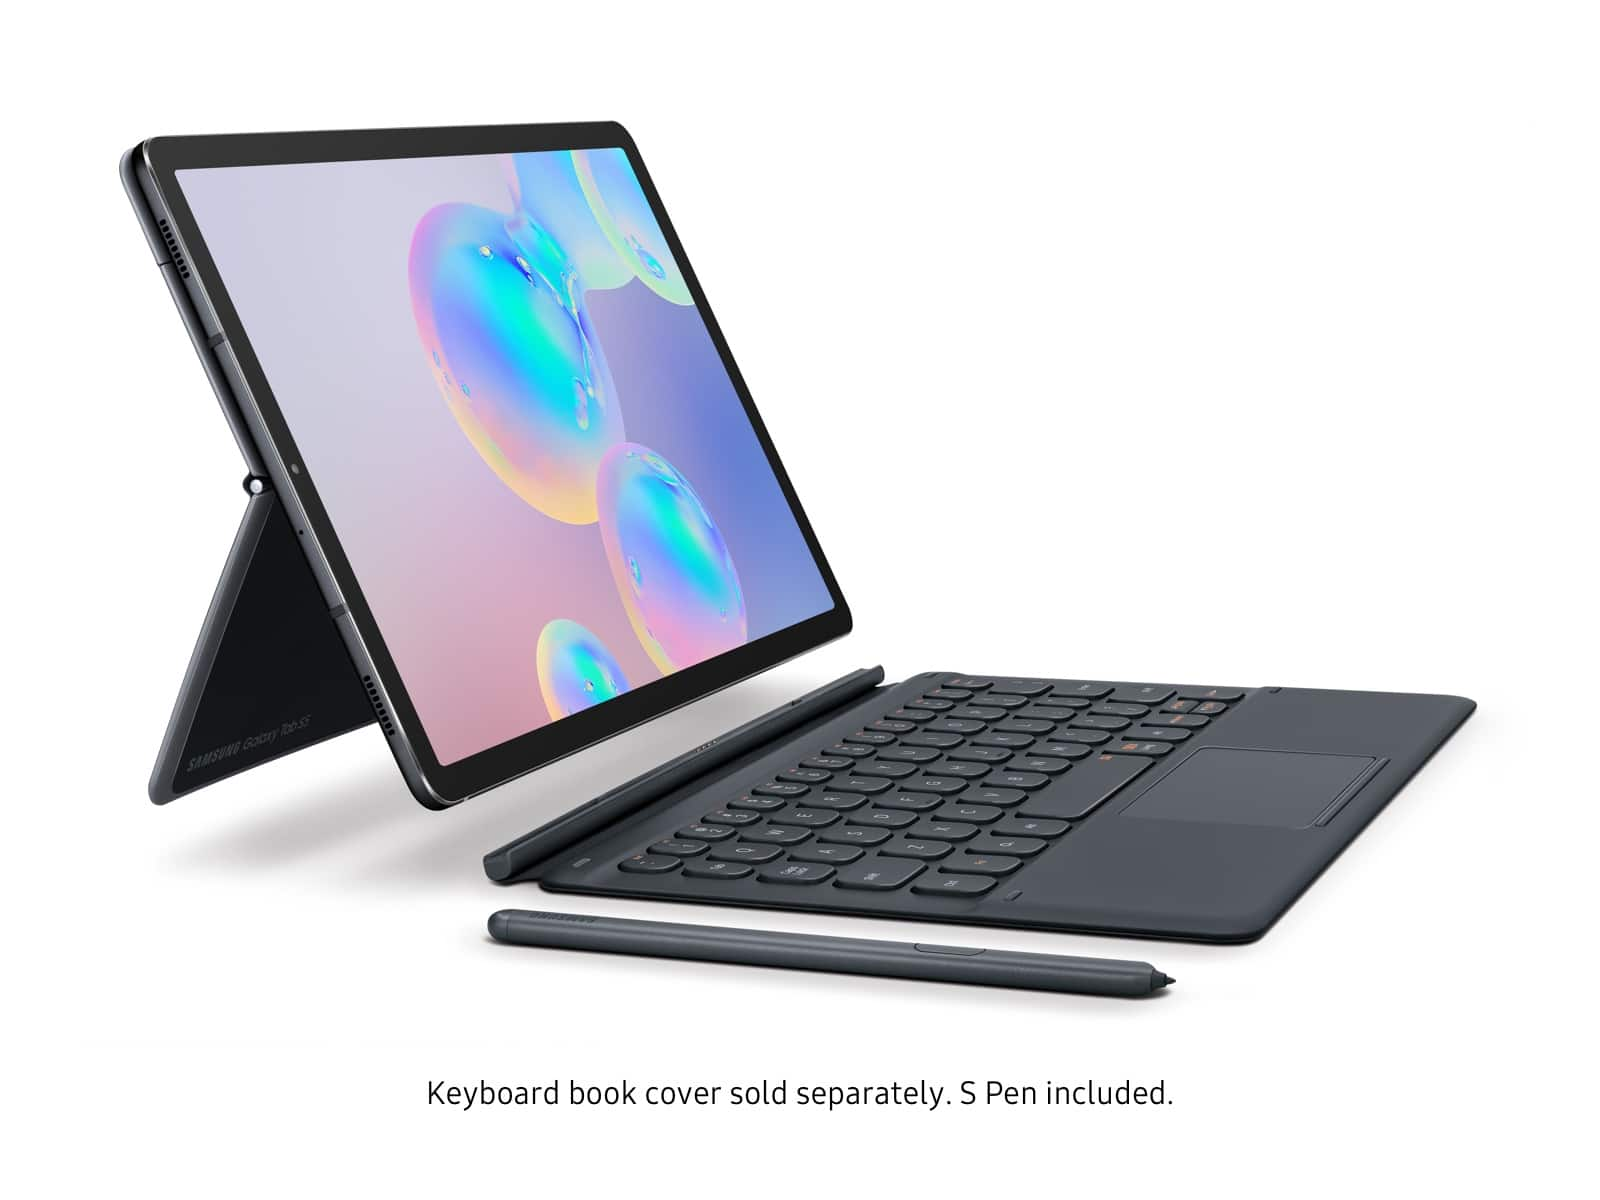 """Samsung Galaxy Tab S6 10.5"""", 128GB WiFi - Samsung - With Student/Edu account - (various colors) $450.49"""